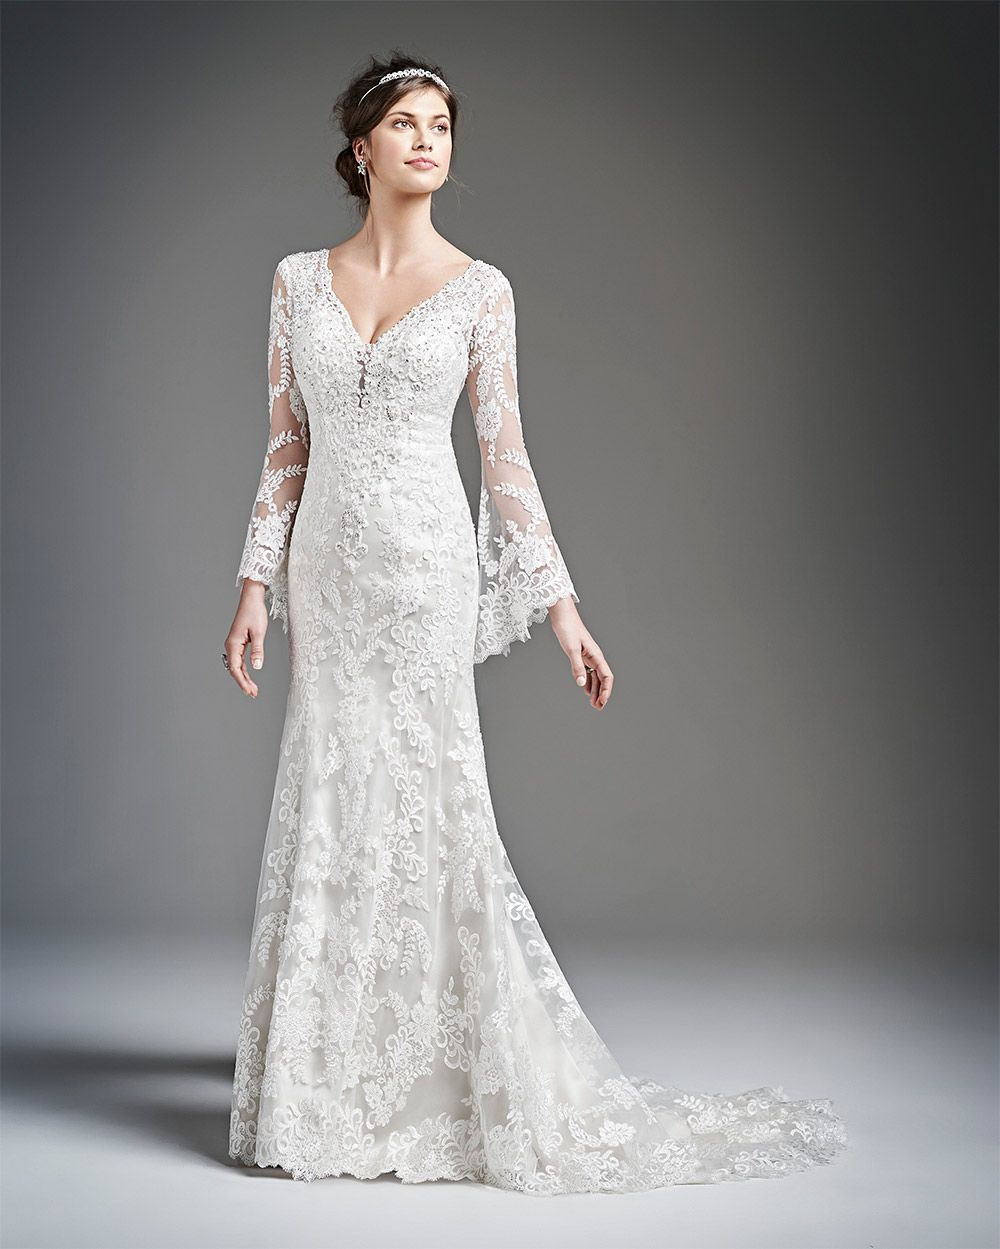 Attirant Wedding Dress For Older Bride More